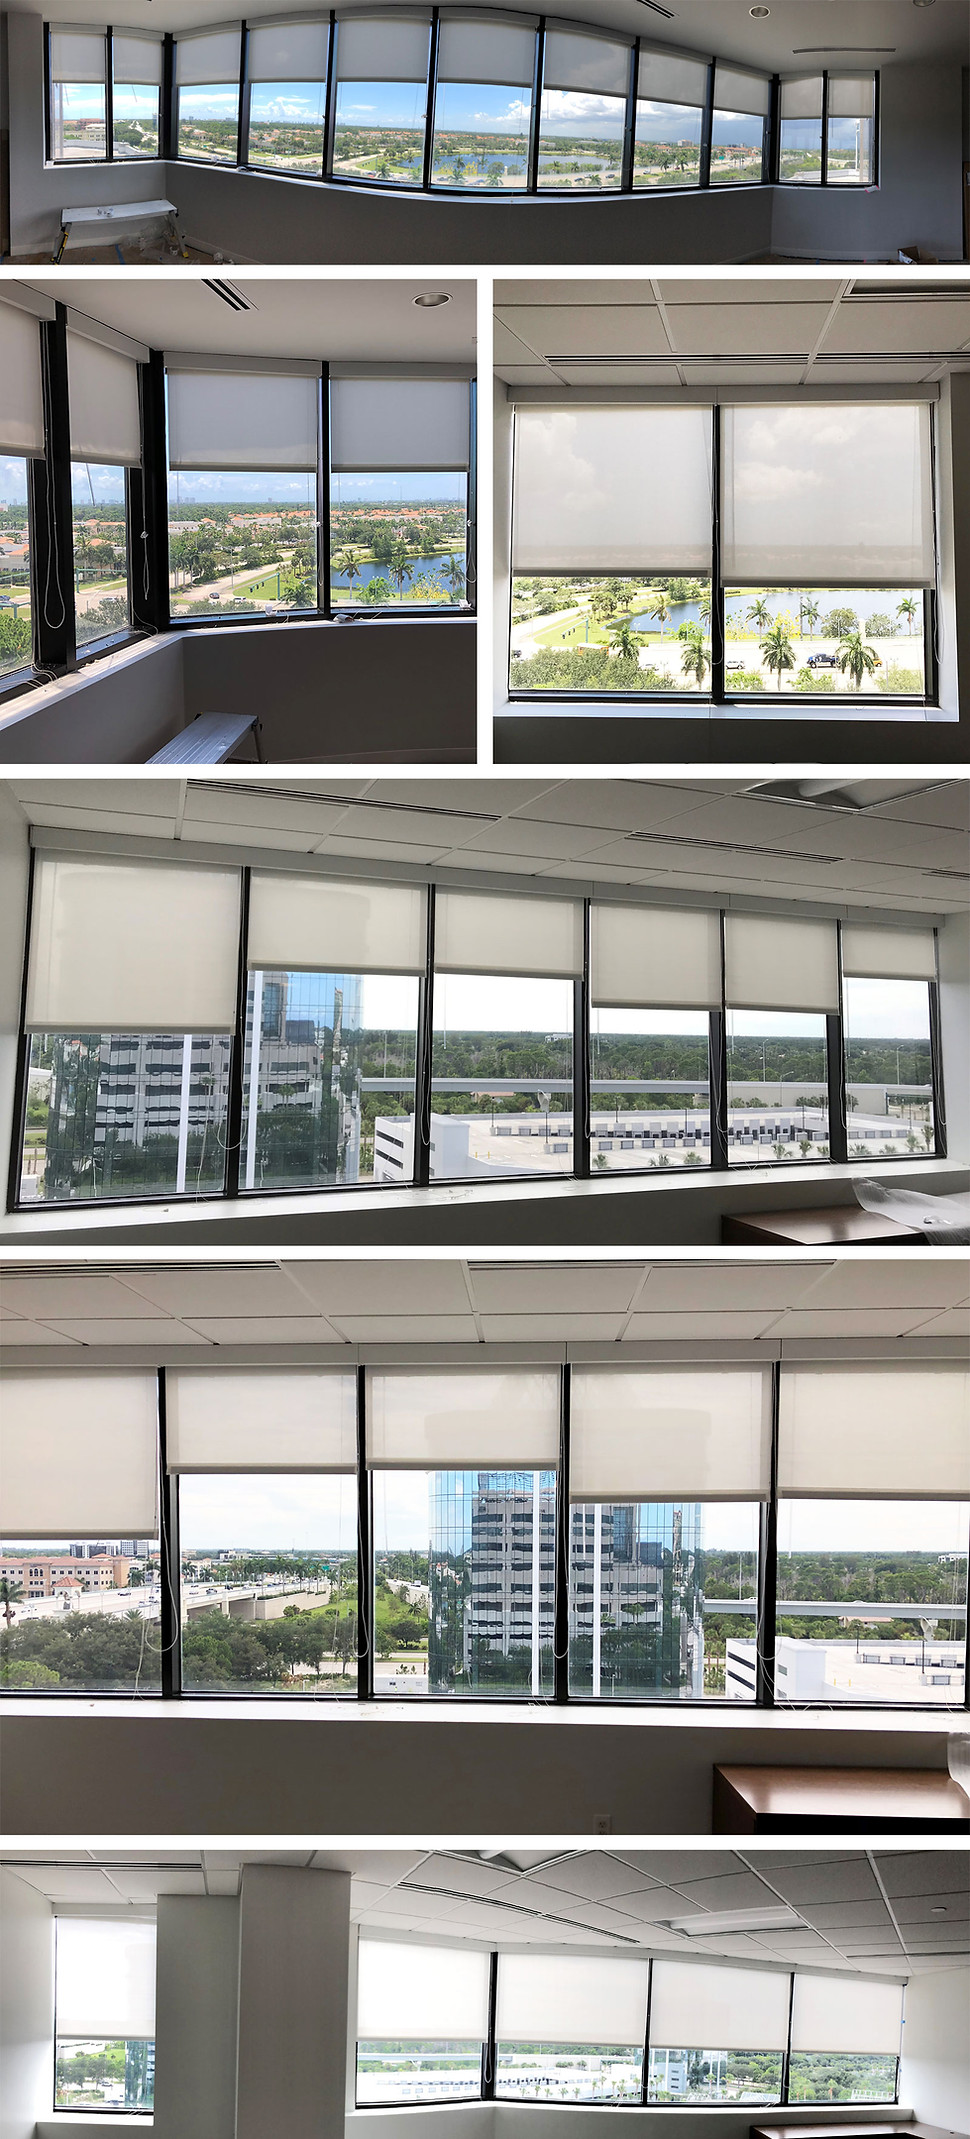 west-palm-beach-commercial-window-shades